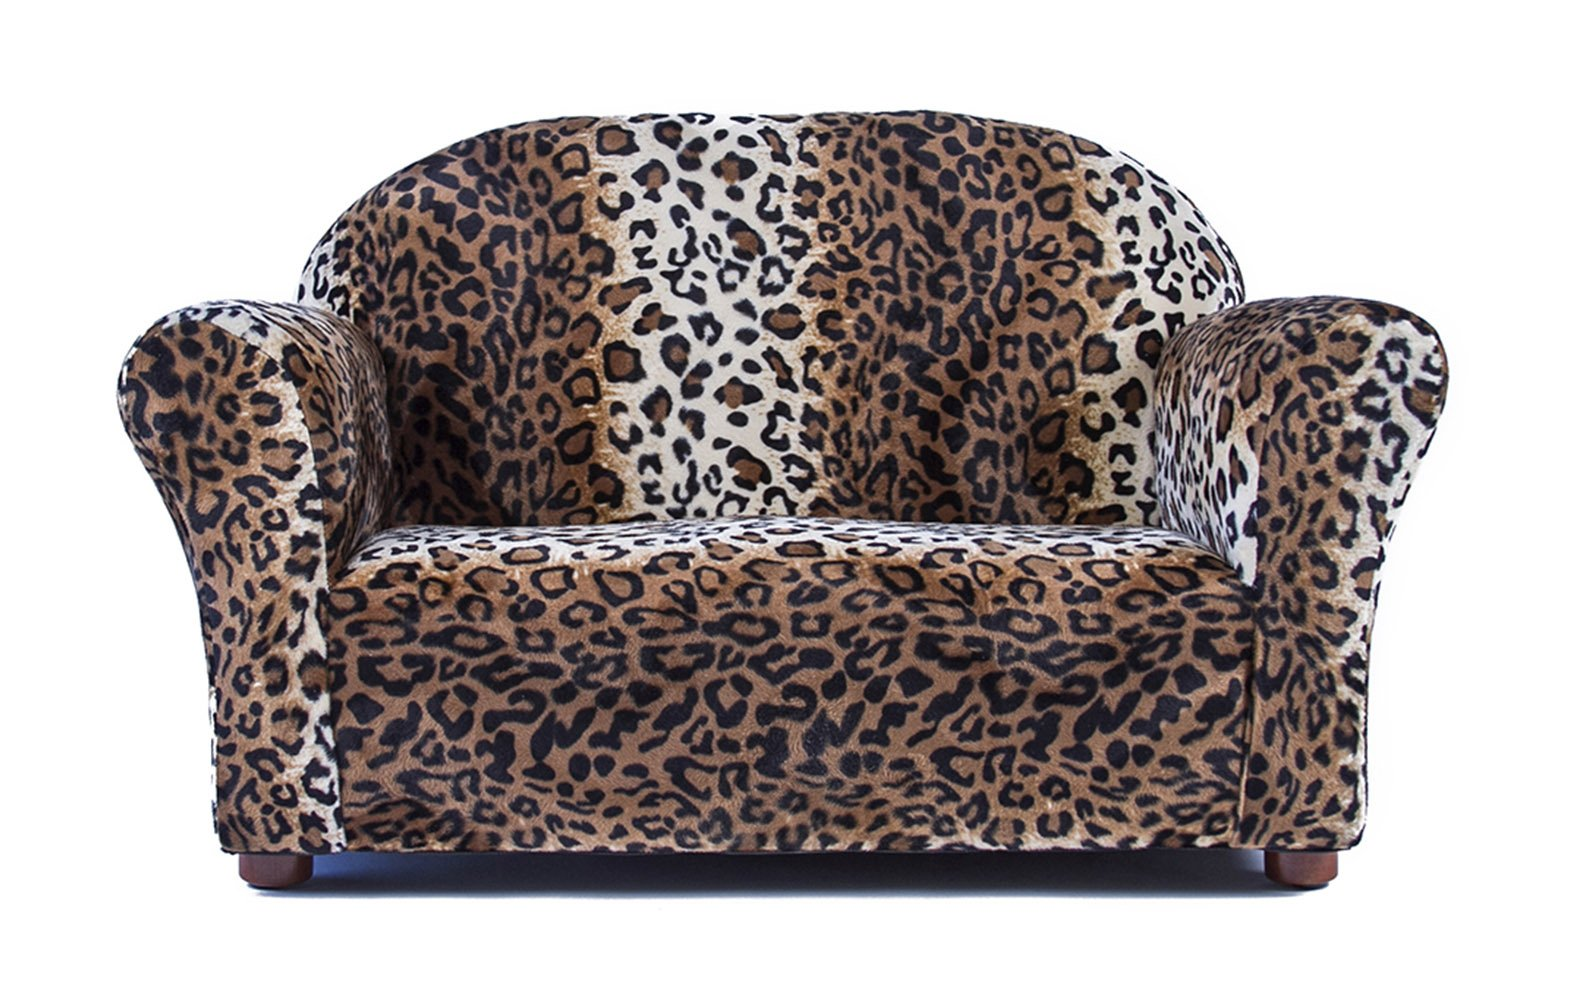 Keet Roundy Faux Fur Children's Sofa, Leopard by Keet